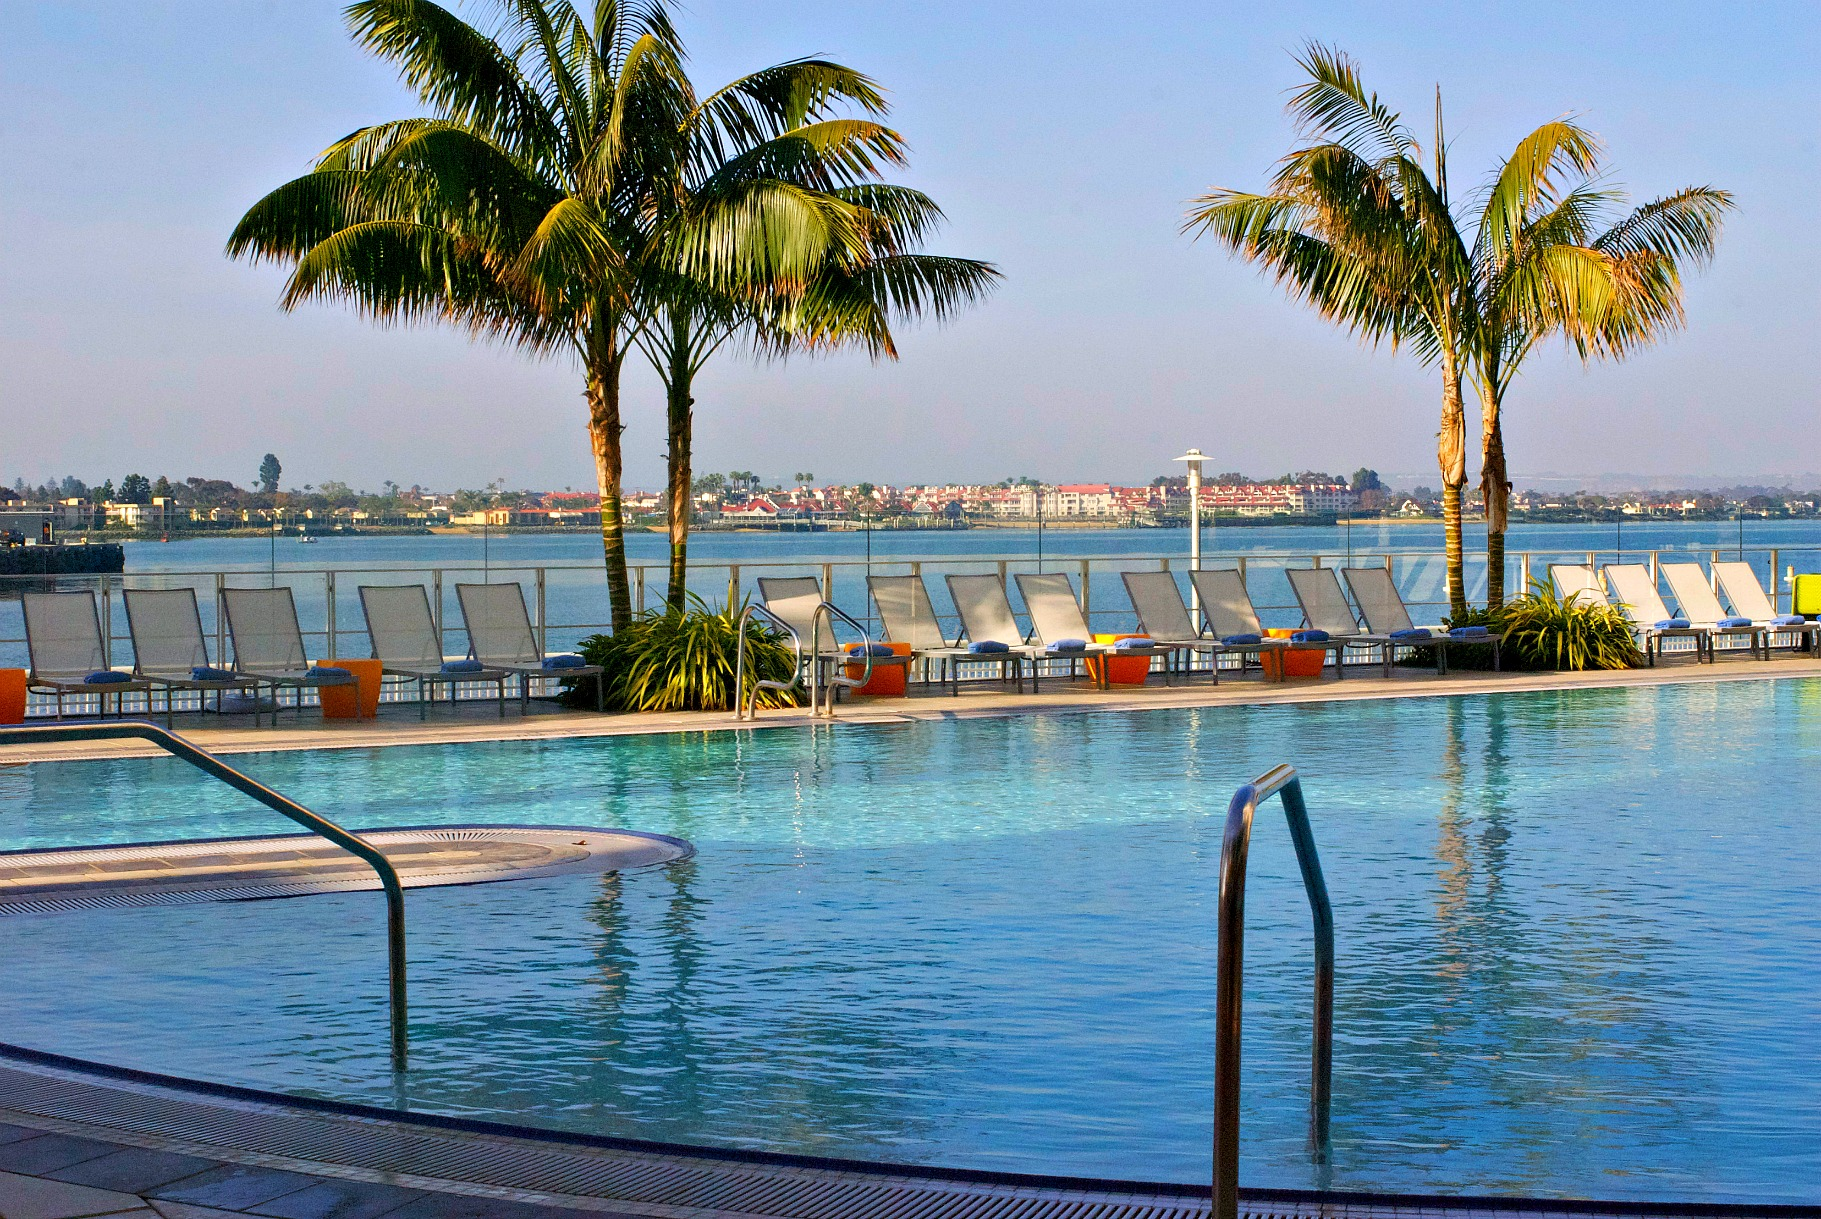 Hilton Bayfront pool with a view of the bay